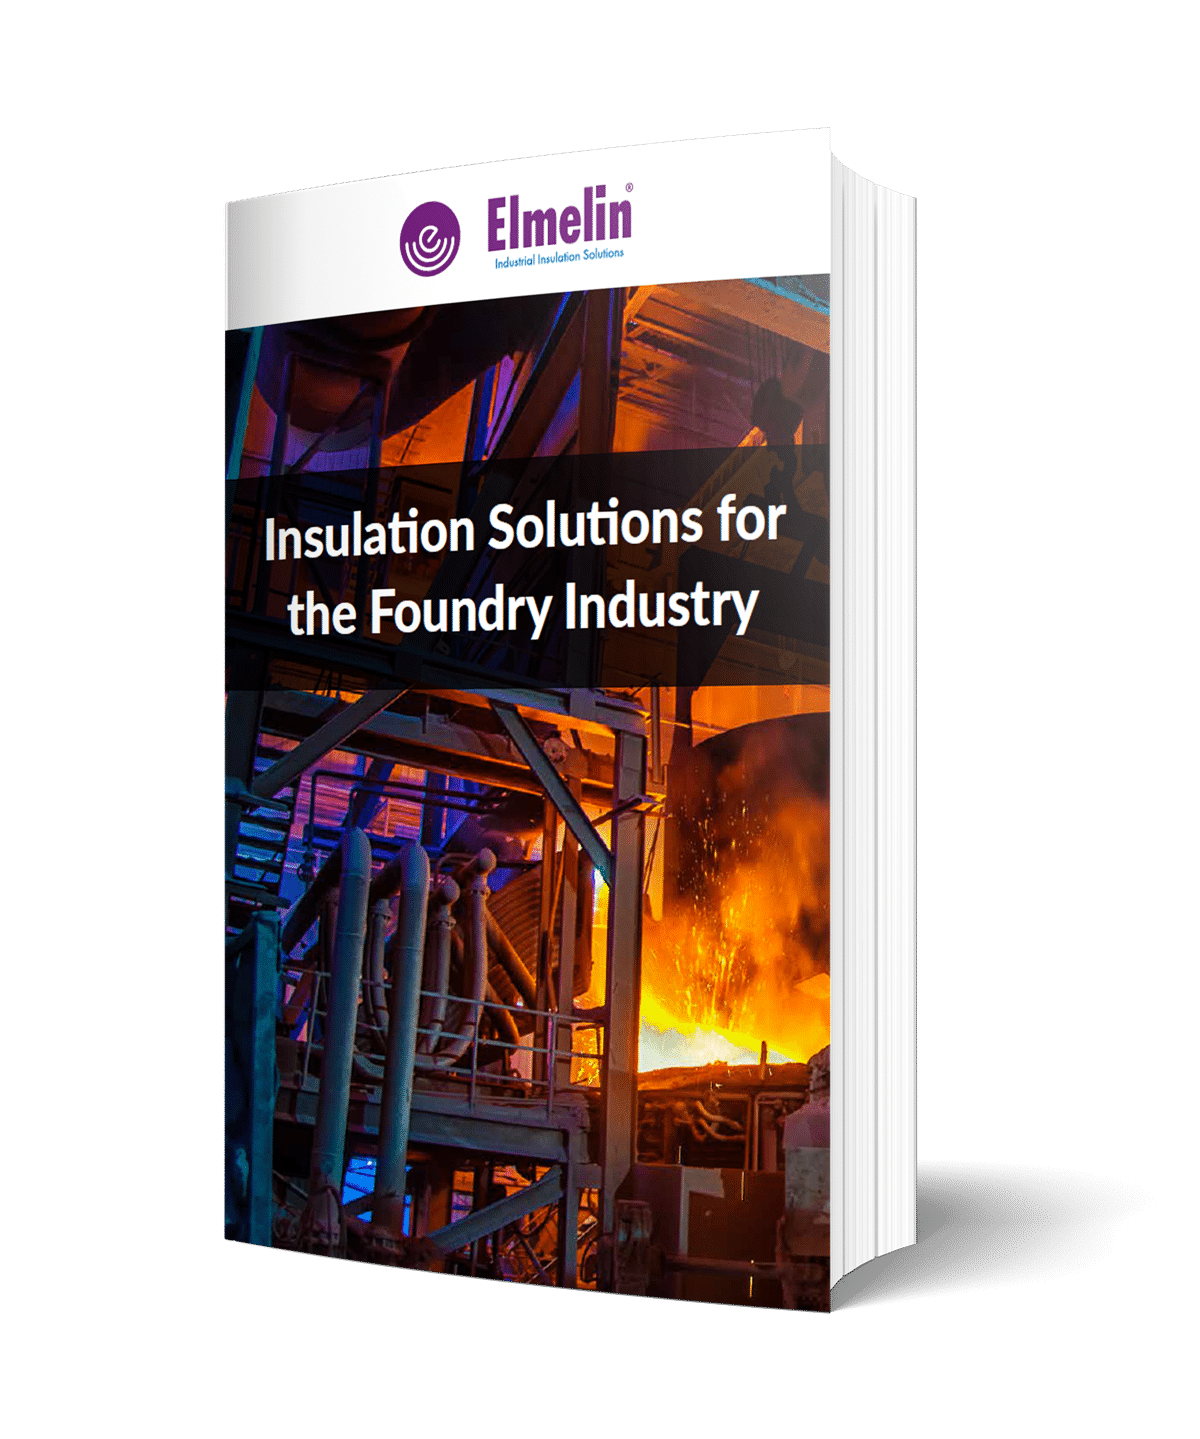 Insulation Solutions for the Foundry Industry